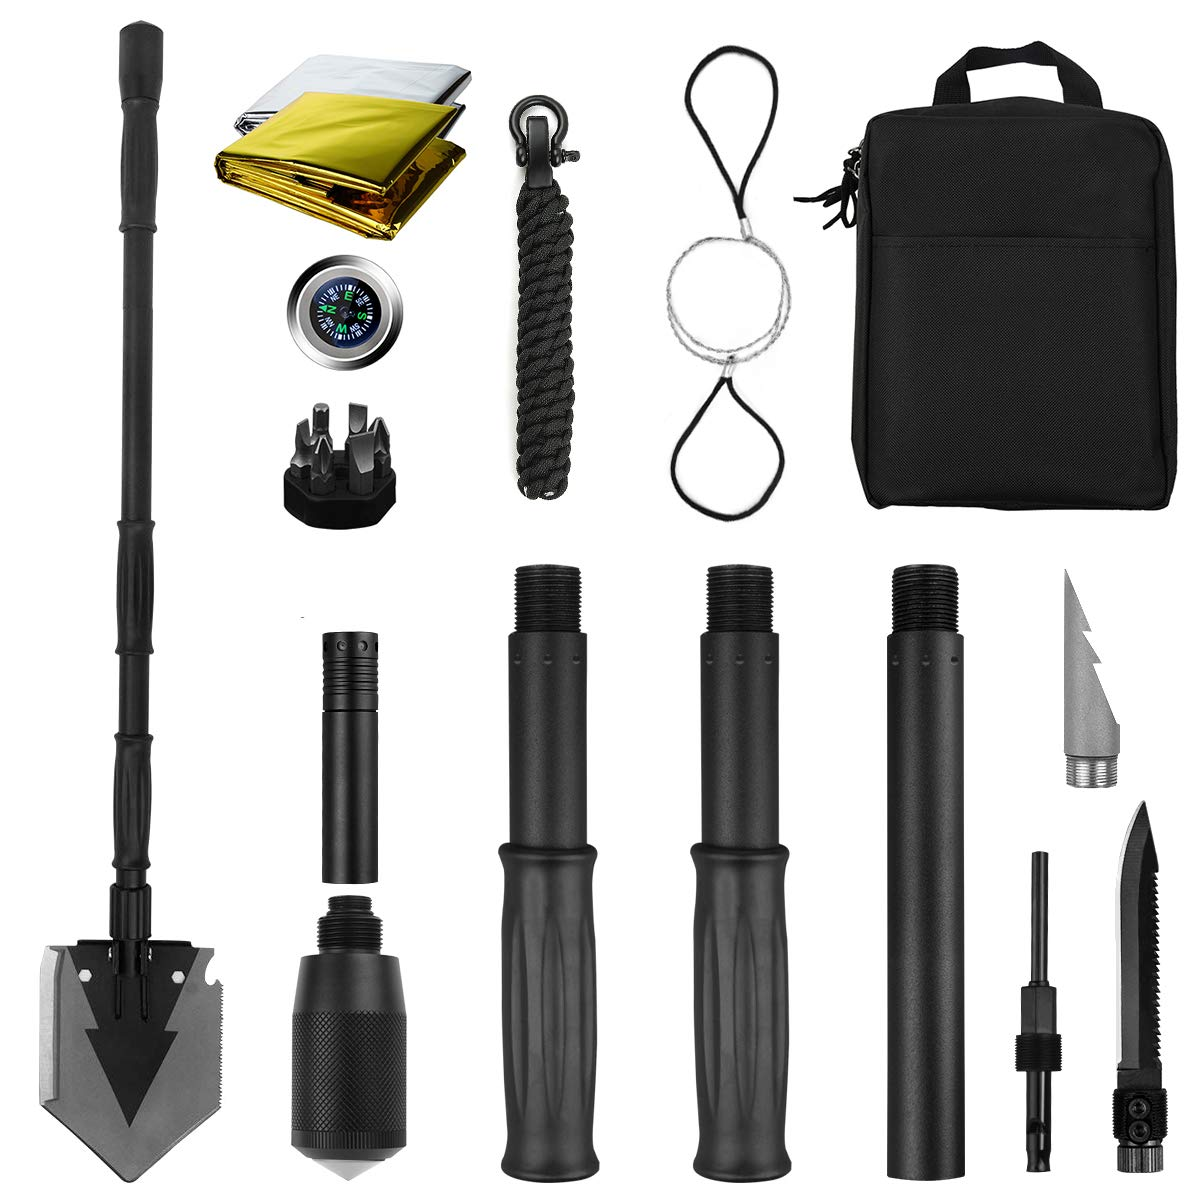 Yeacool Portable Folding Shovel Pickax with Carrying Pouch All-in-1 Military Multitool Tactical Spade for Outdoor Camping Hiking Backpacking Entrenching Garden Tool (38 inch Shovel with Survival Kit)